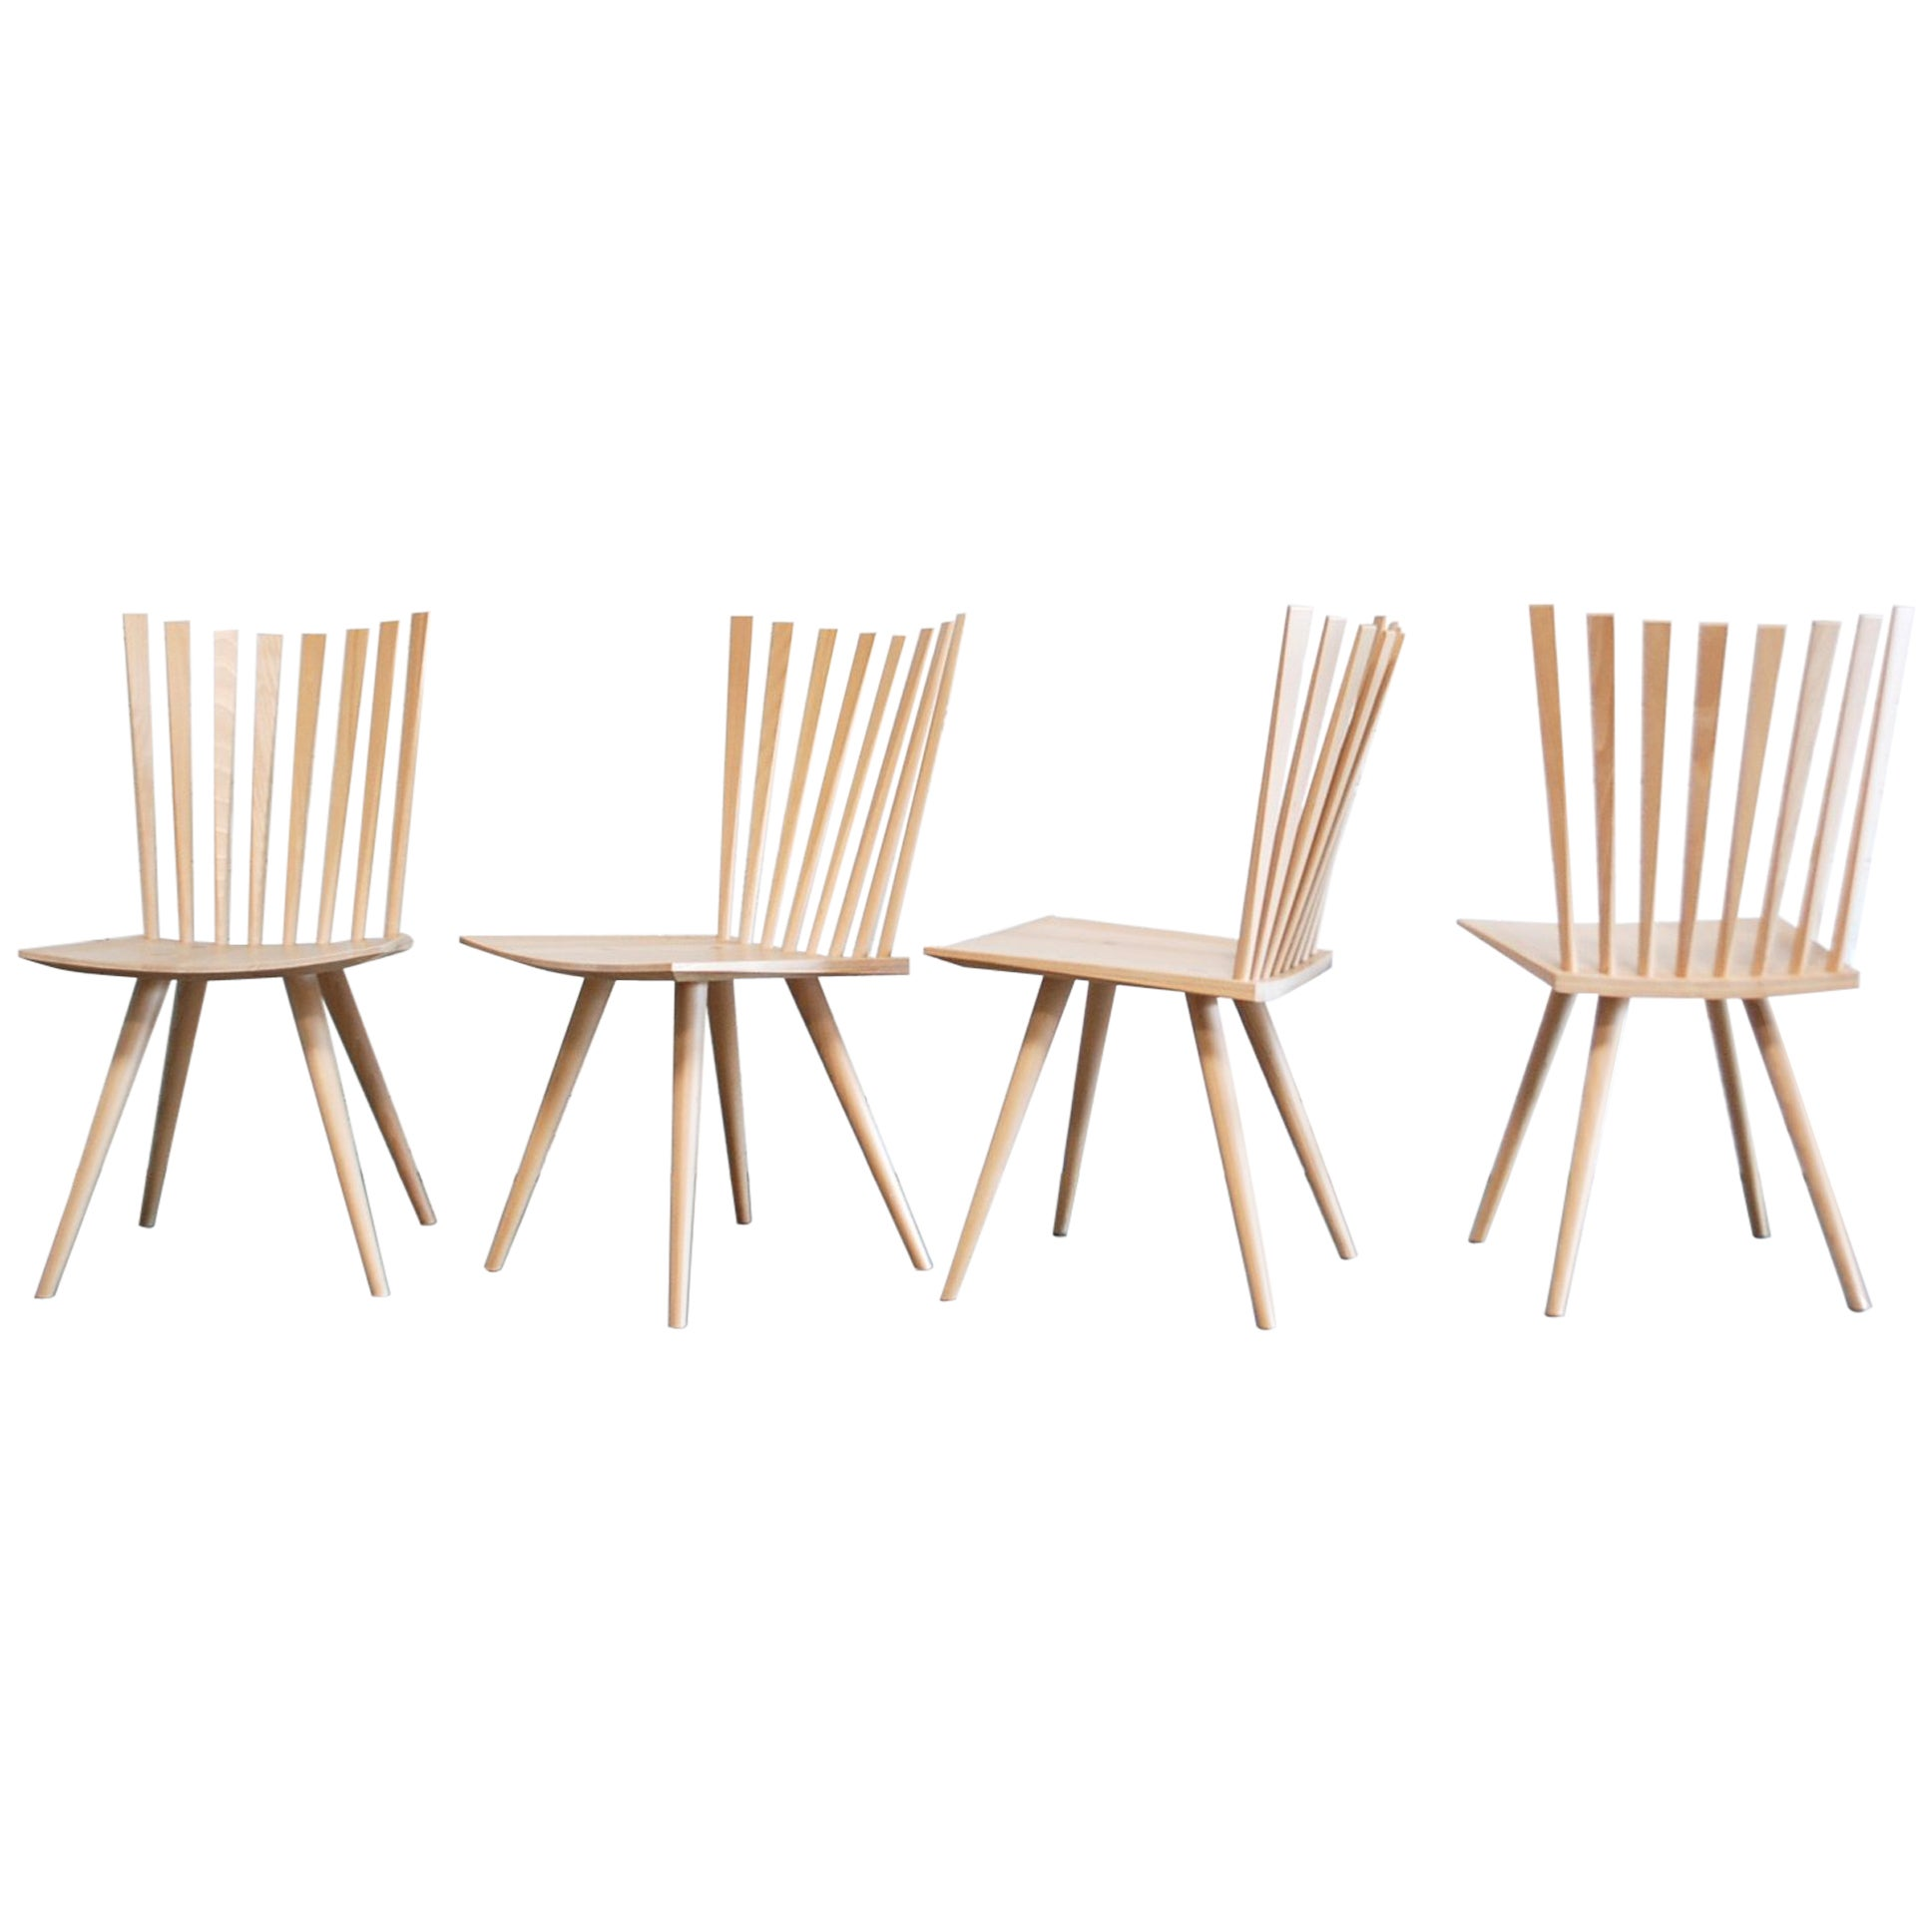 Mikado Dining Chairs Design Foersom & Hiort-Lorenzen by Fredericia